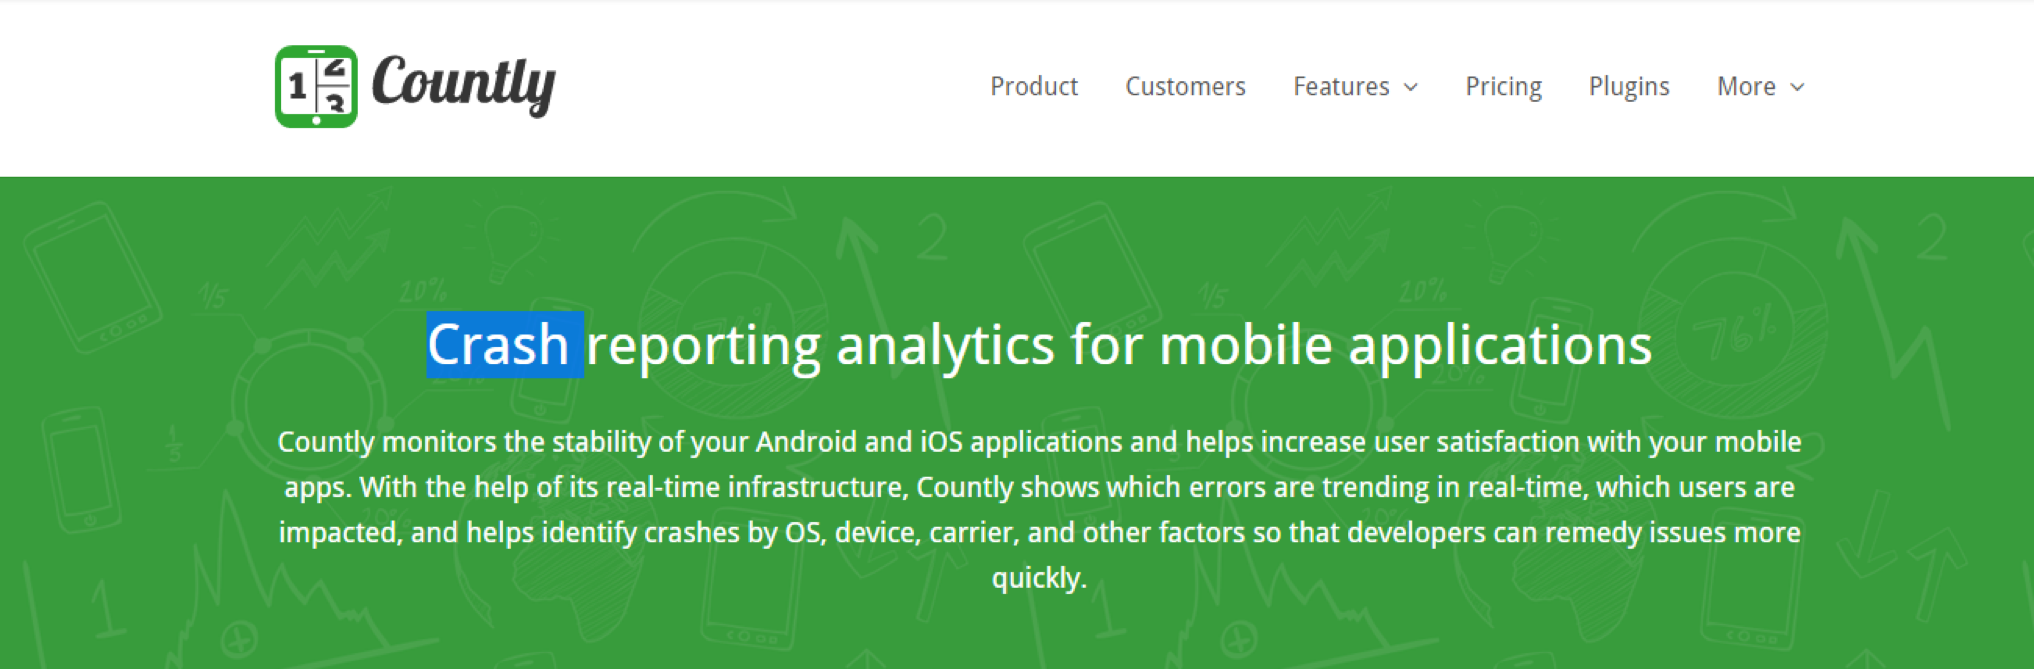 8 Crash Reporting Tools For iOS And Android Apps